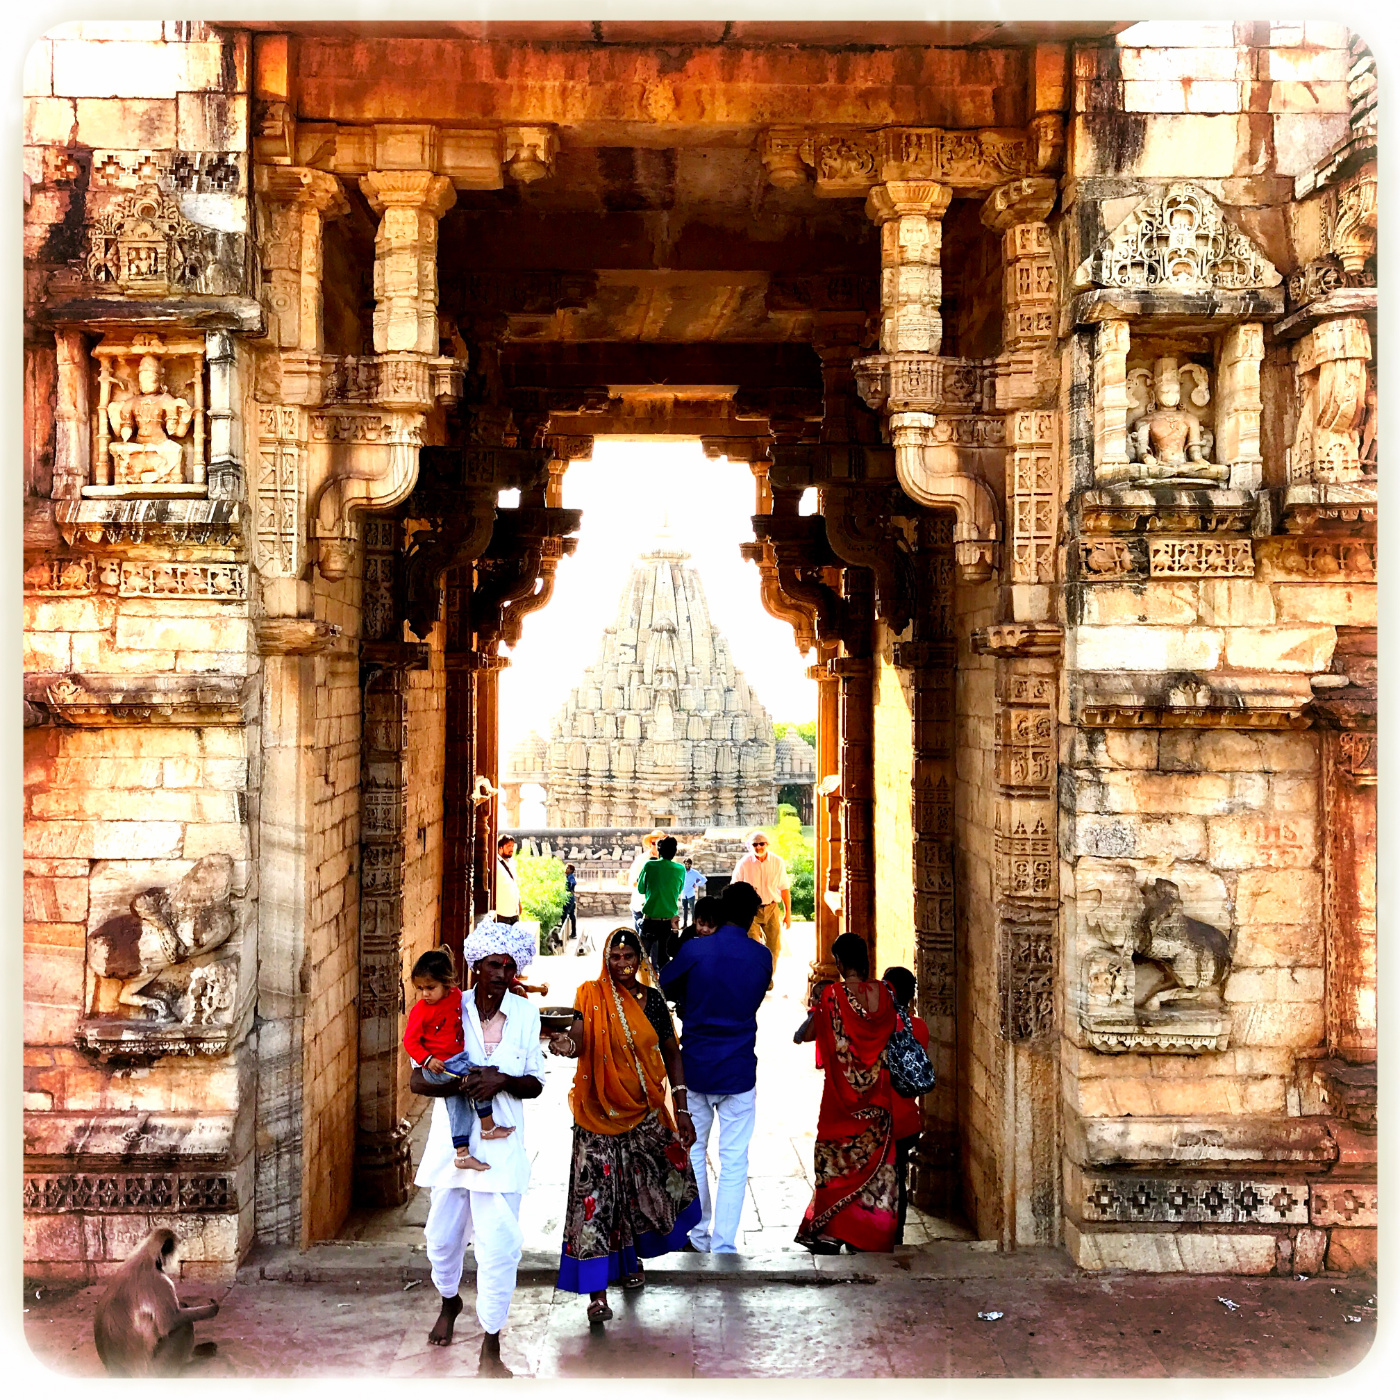 708-India-Chittorgarh